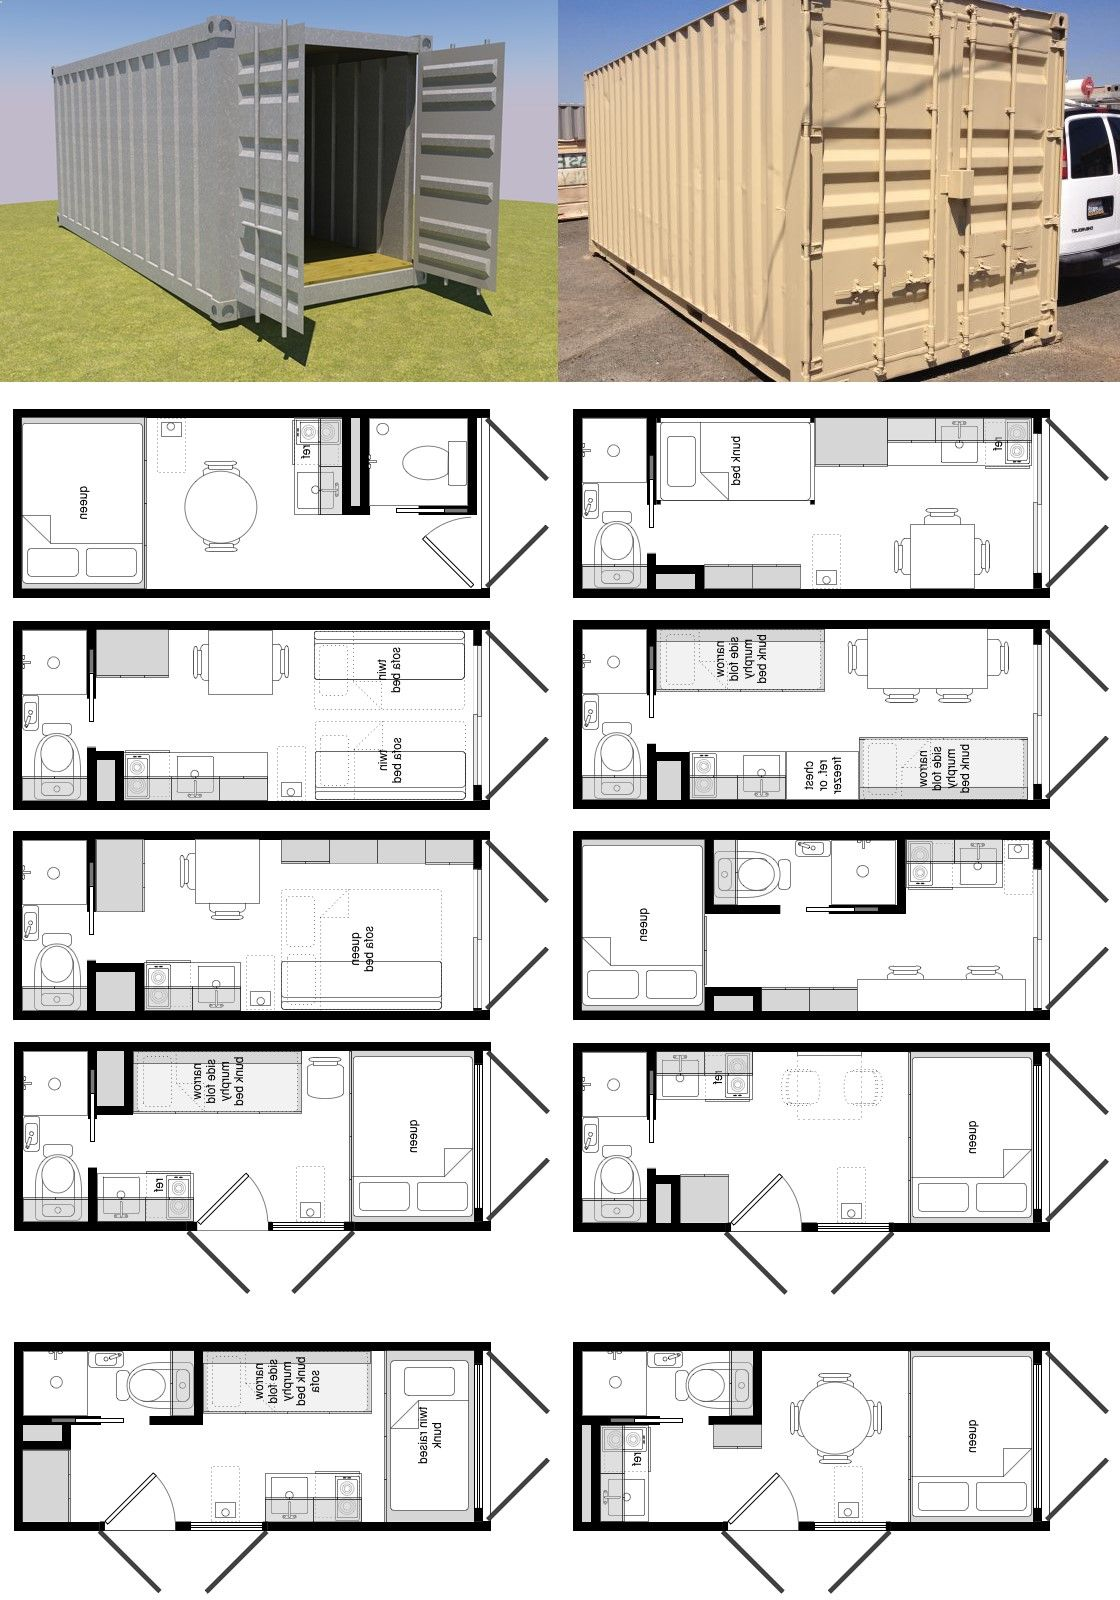 Best Kitchen Gallery: Container House 20 Foot Shipping Container Floor Plan Brainstorm of Shipping Container Floor Plan Designs on rachelxblog.com